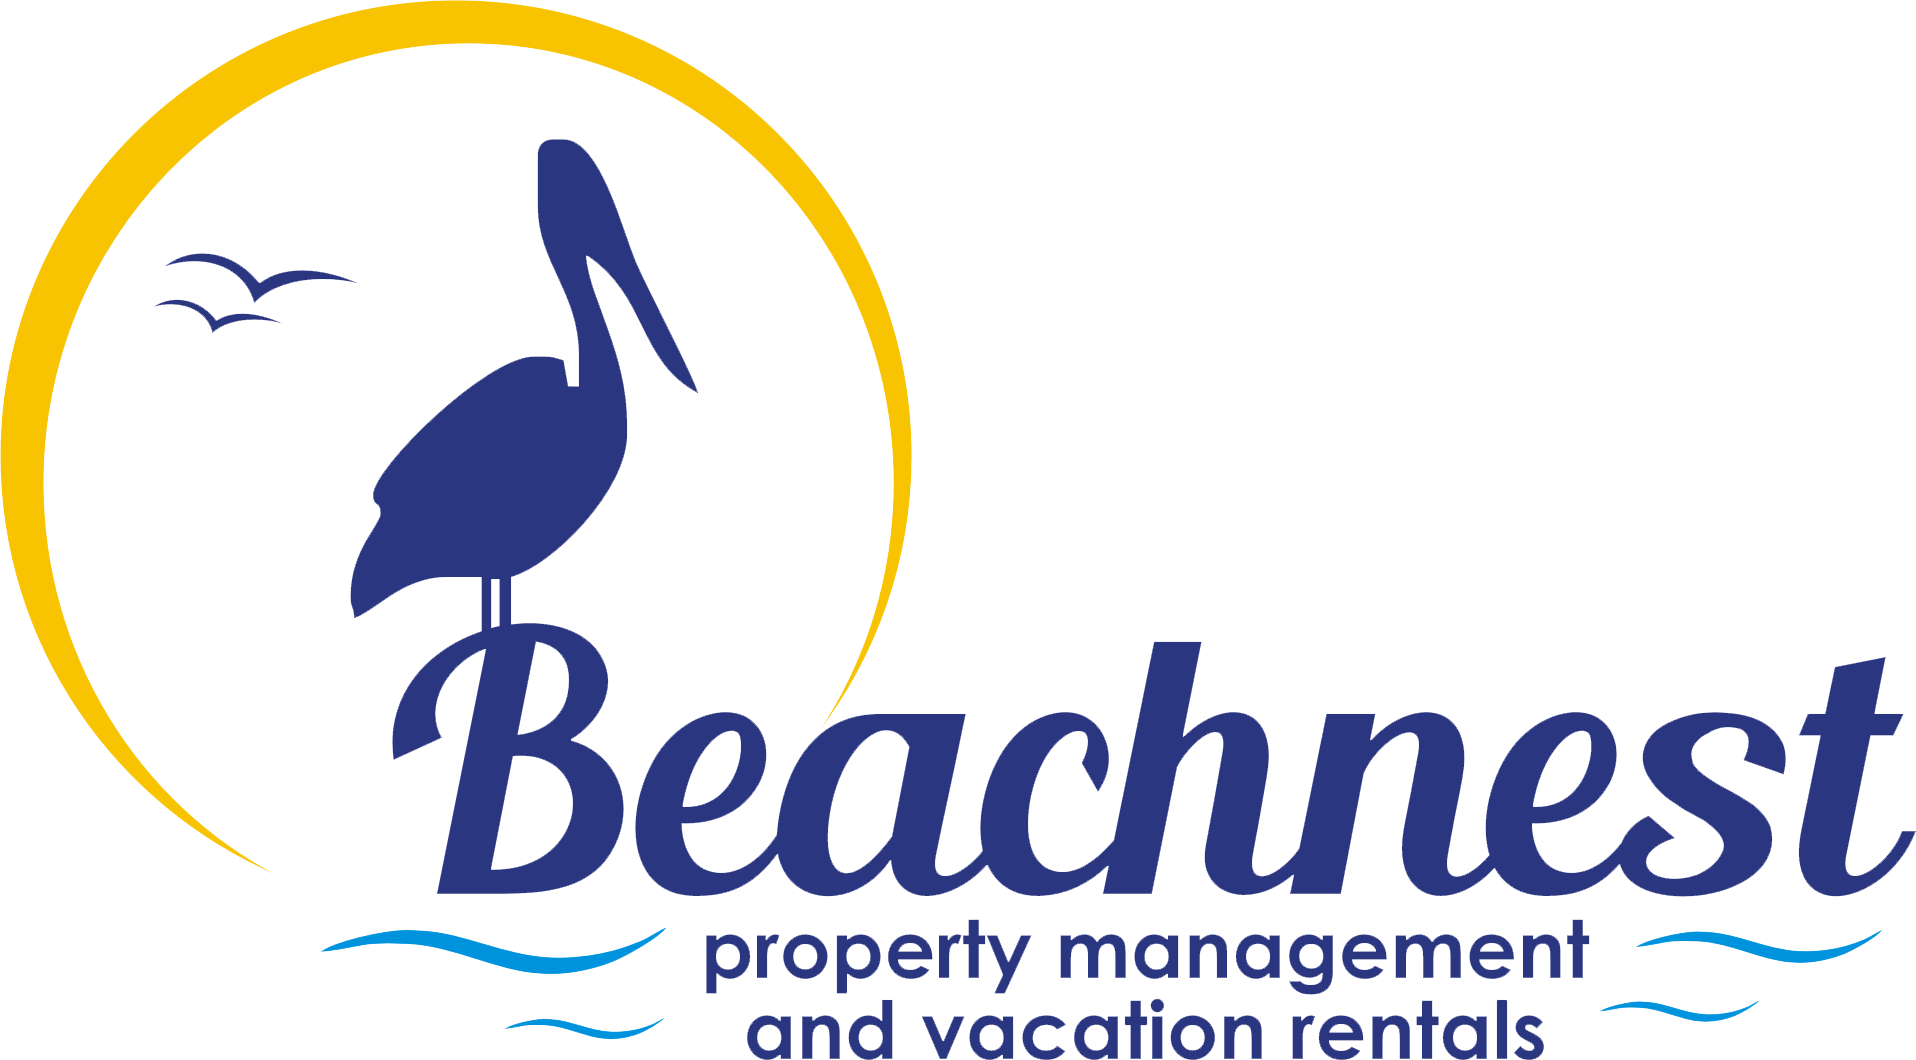 Beachnest-Logo-New.png